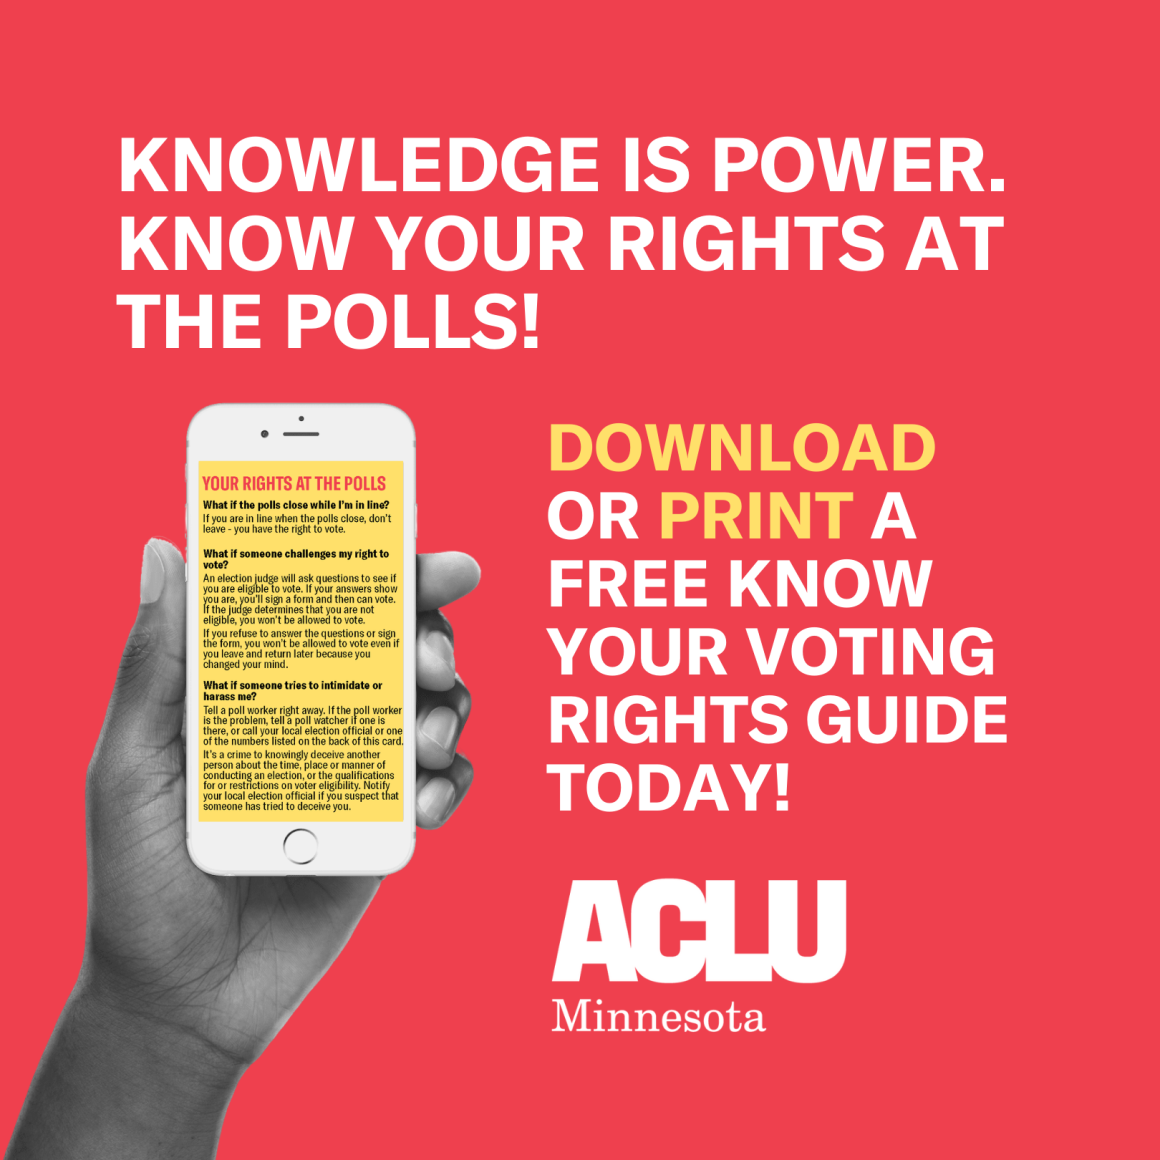 KNOWLEDGE IS POWER. KNOW YOUR RIGHTS AT THE POLLS! DOWNLOAD OR PRINT A FREE KNOW YOUR VOTING RIGHTS GUIDE TODAY!